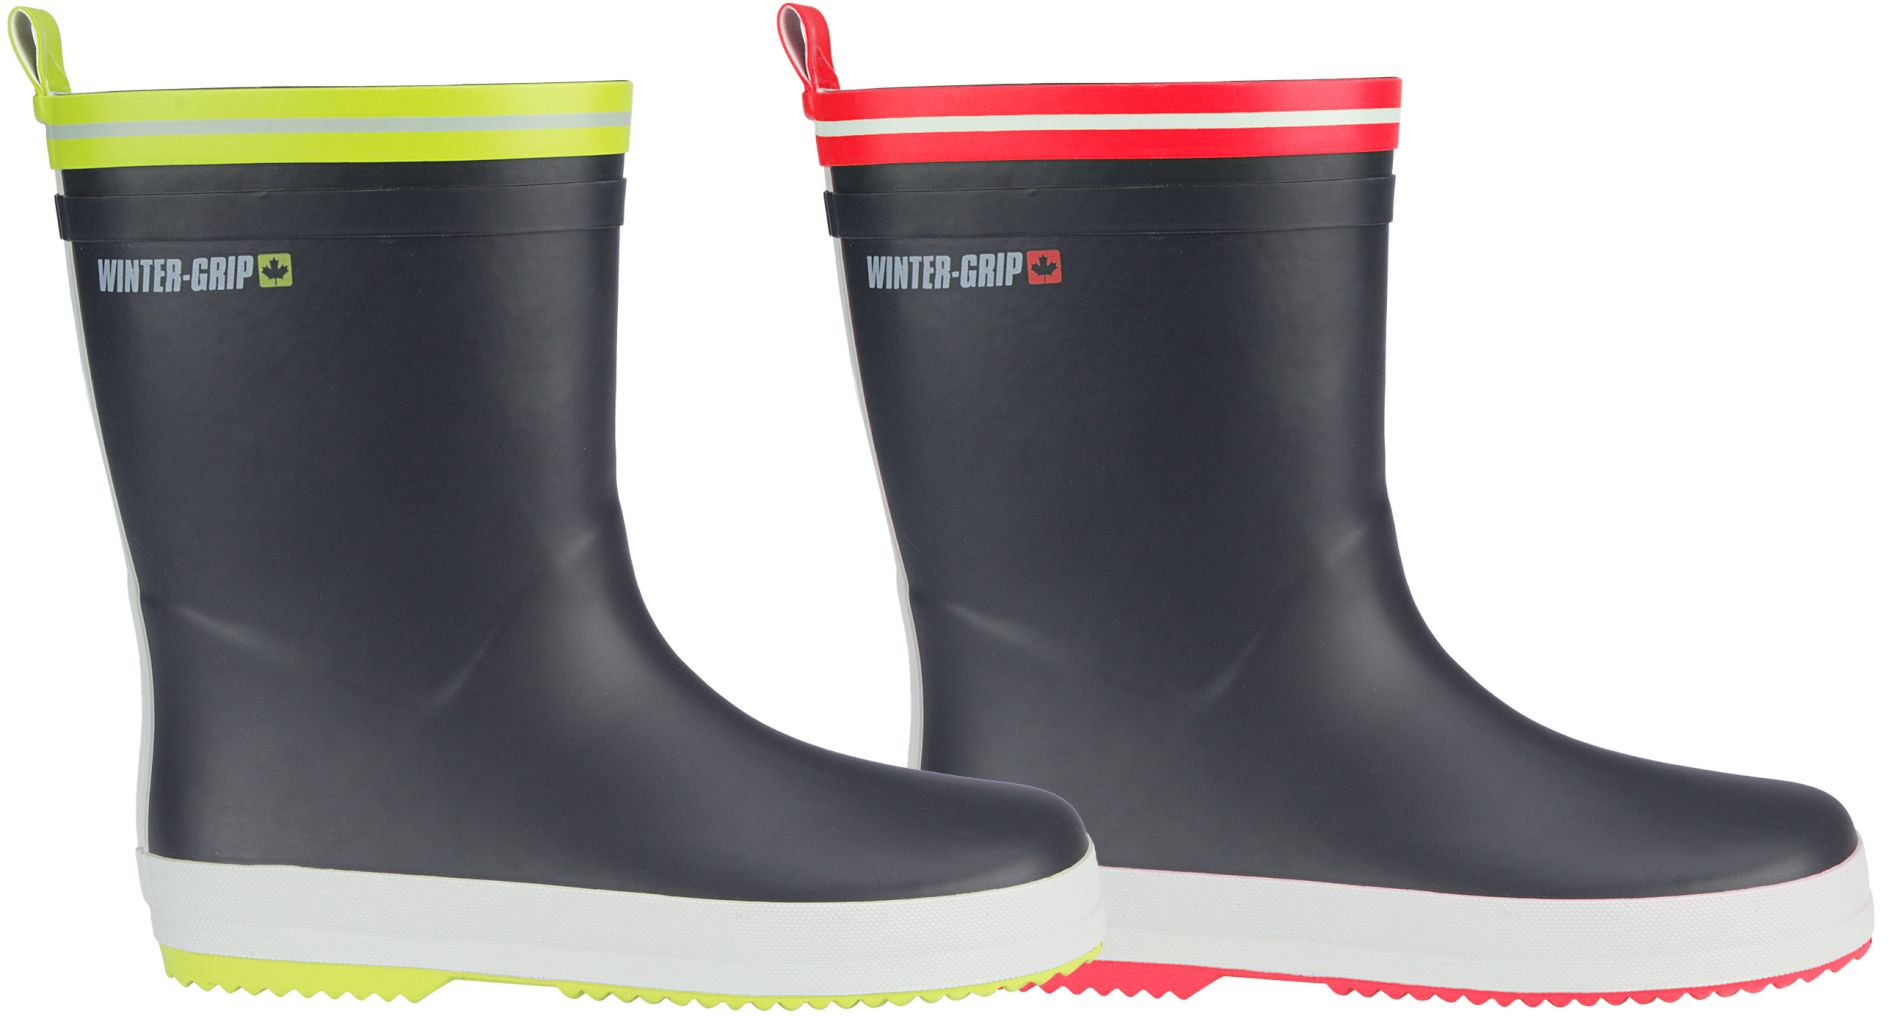 Cizeme iarna Winter-grip Welly, juniori